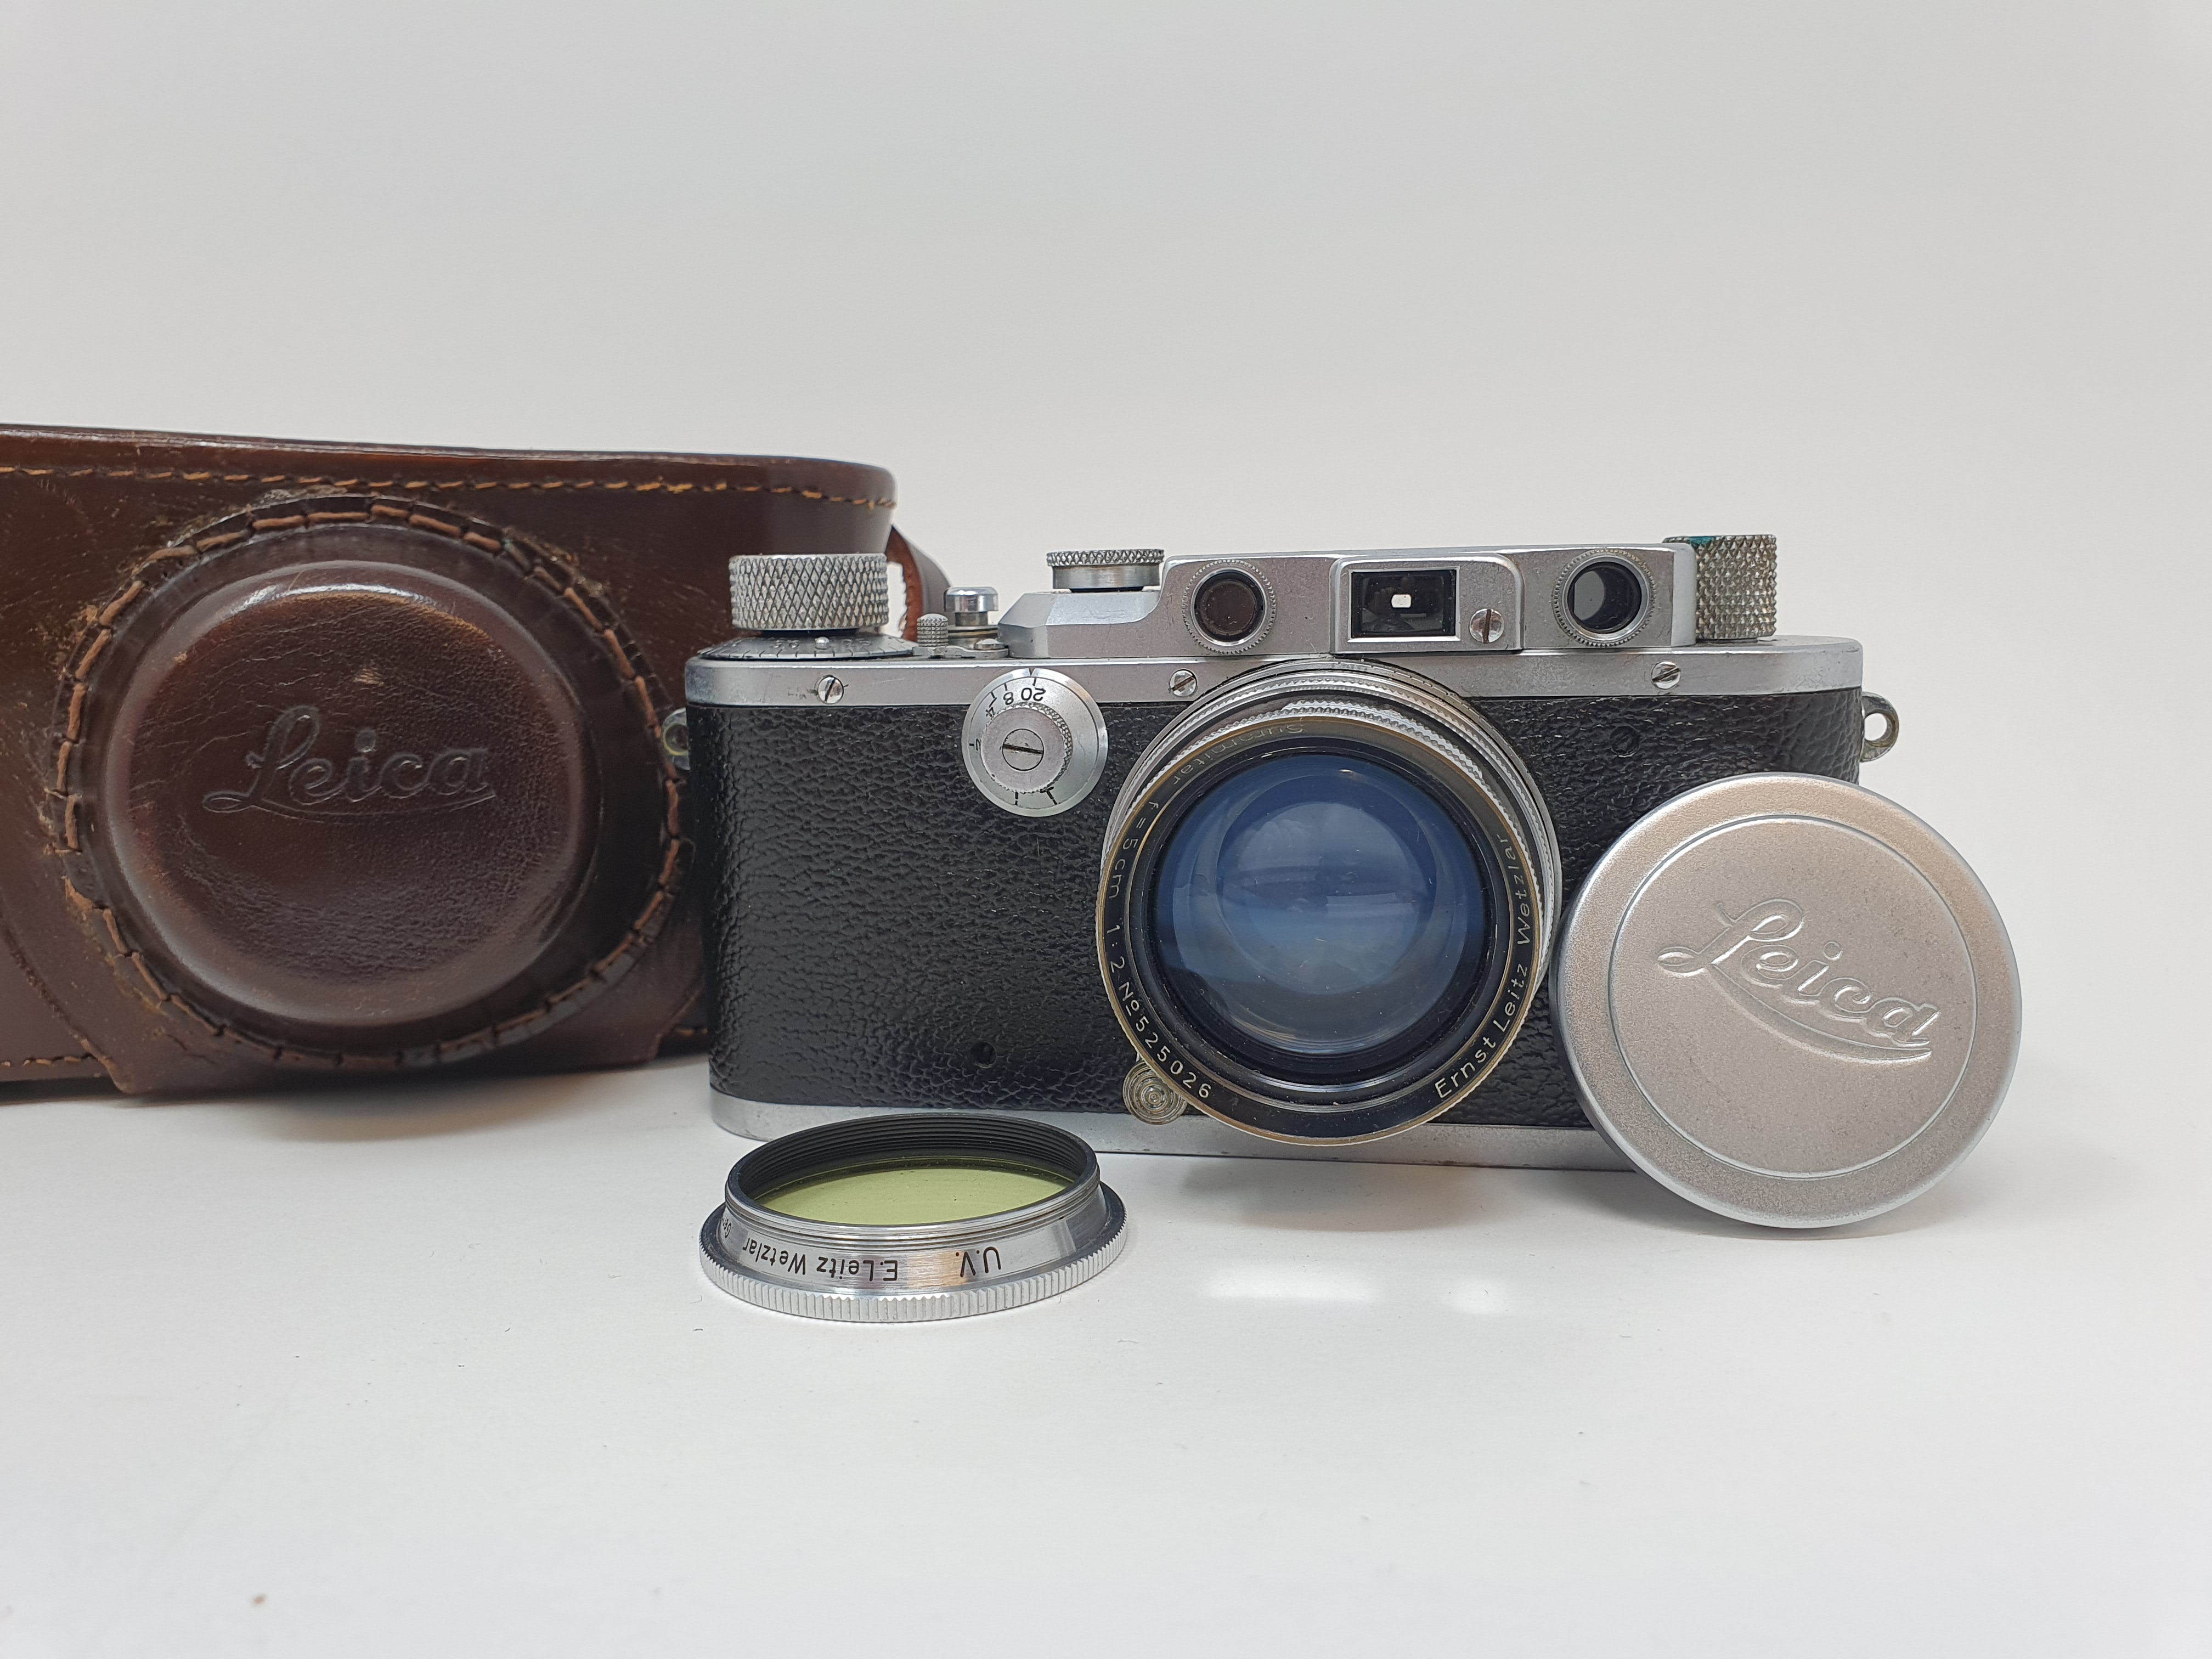 A Leica IIIa camera, serial number 324178, with leather outer case Provenance: Part of a vast single